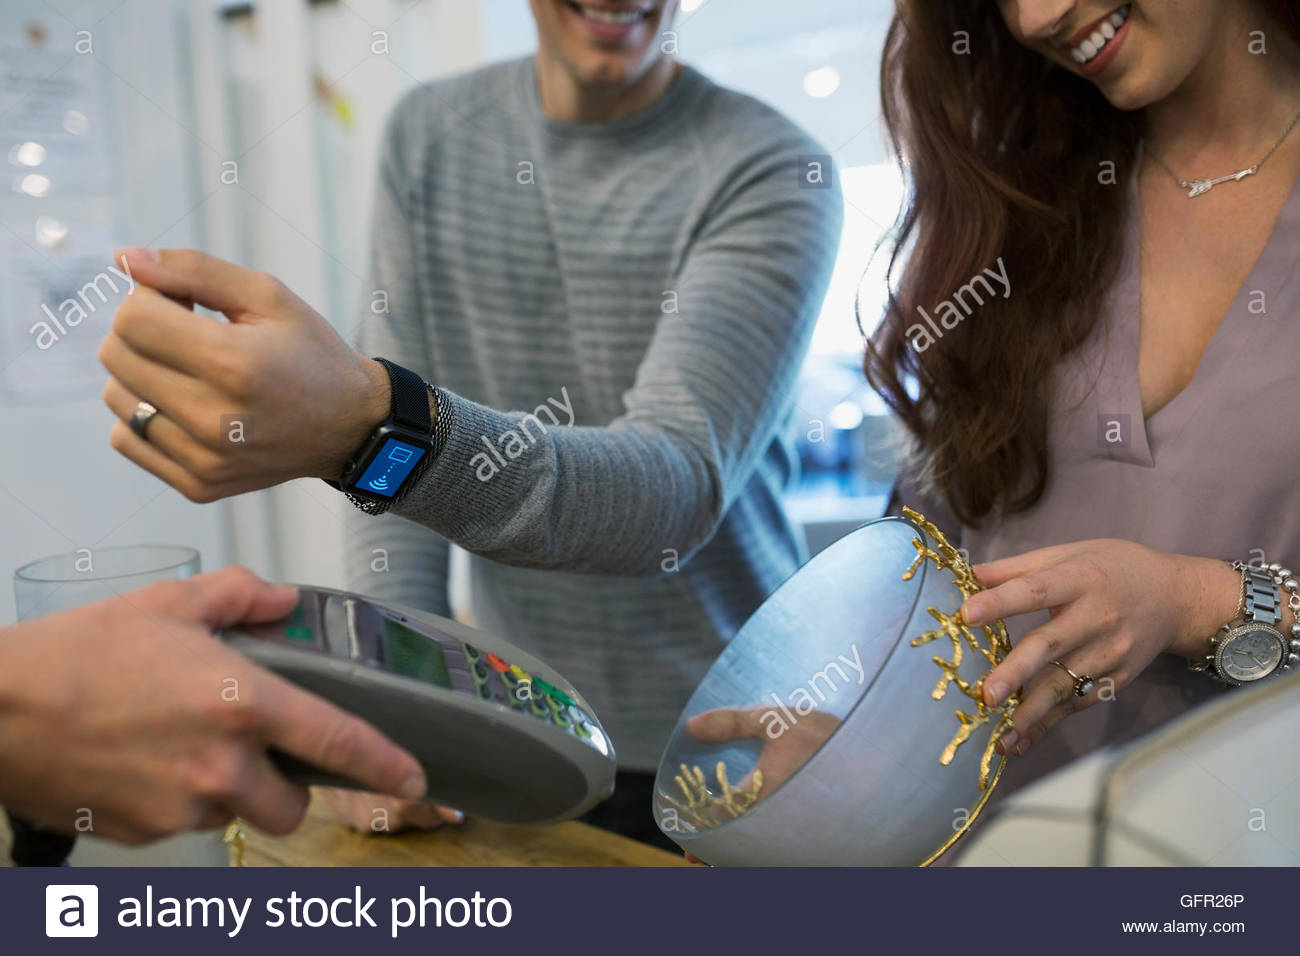 Man paying using smart watch contactless payment at home furnishings store - Stock Image